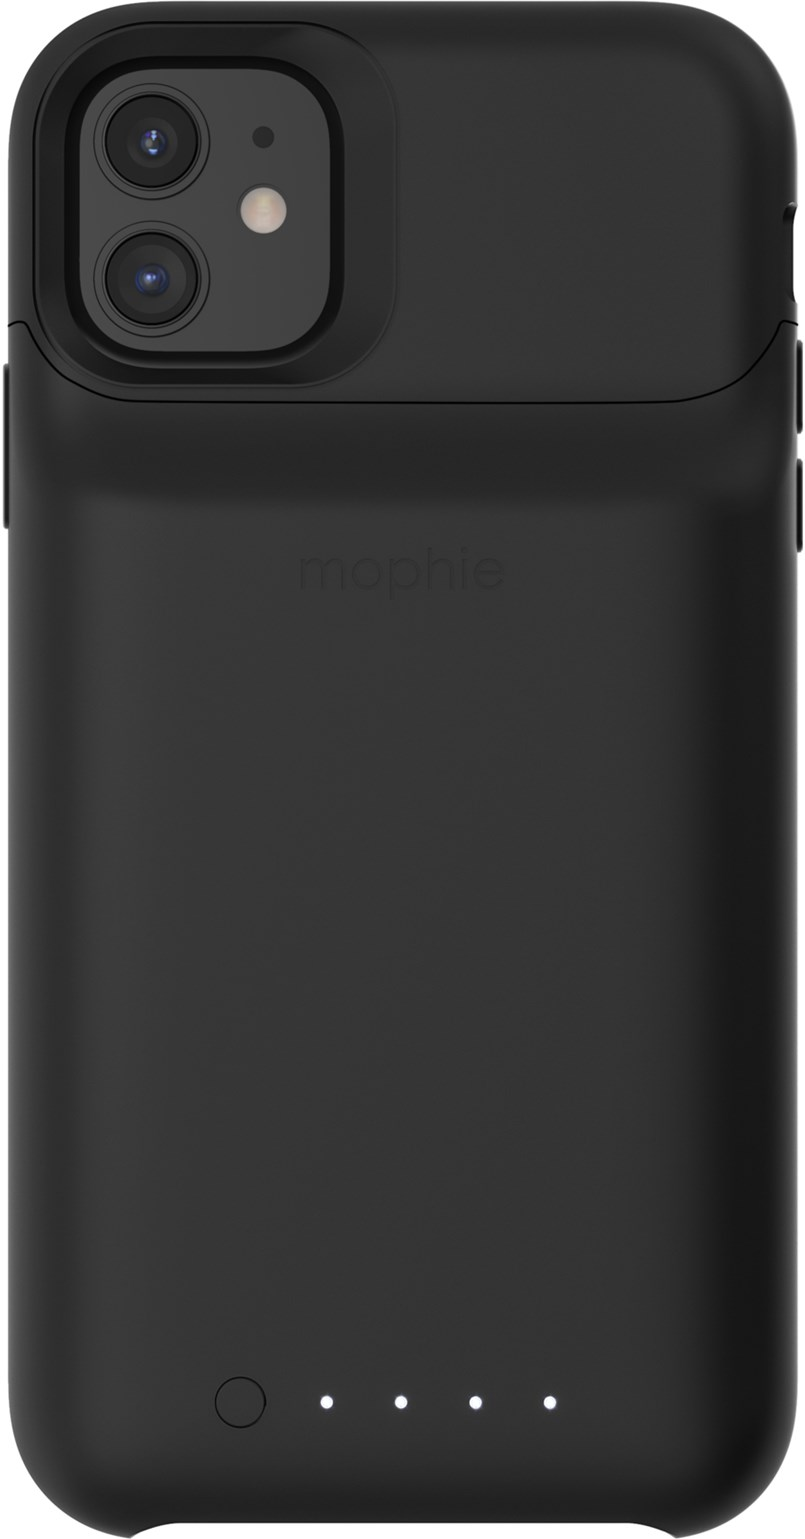 Mophie Juice Pack Access Apple Iphone 11 - Black